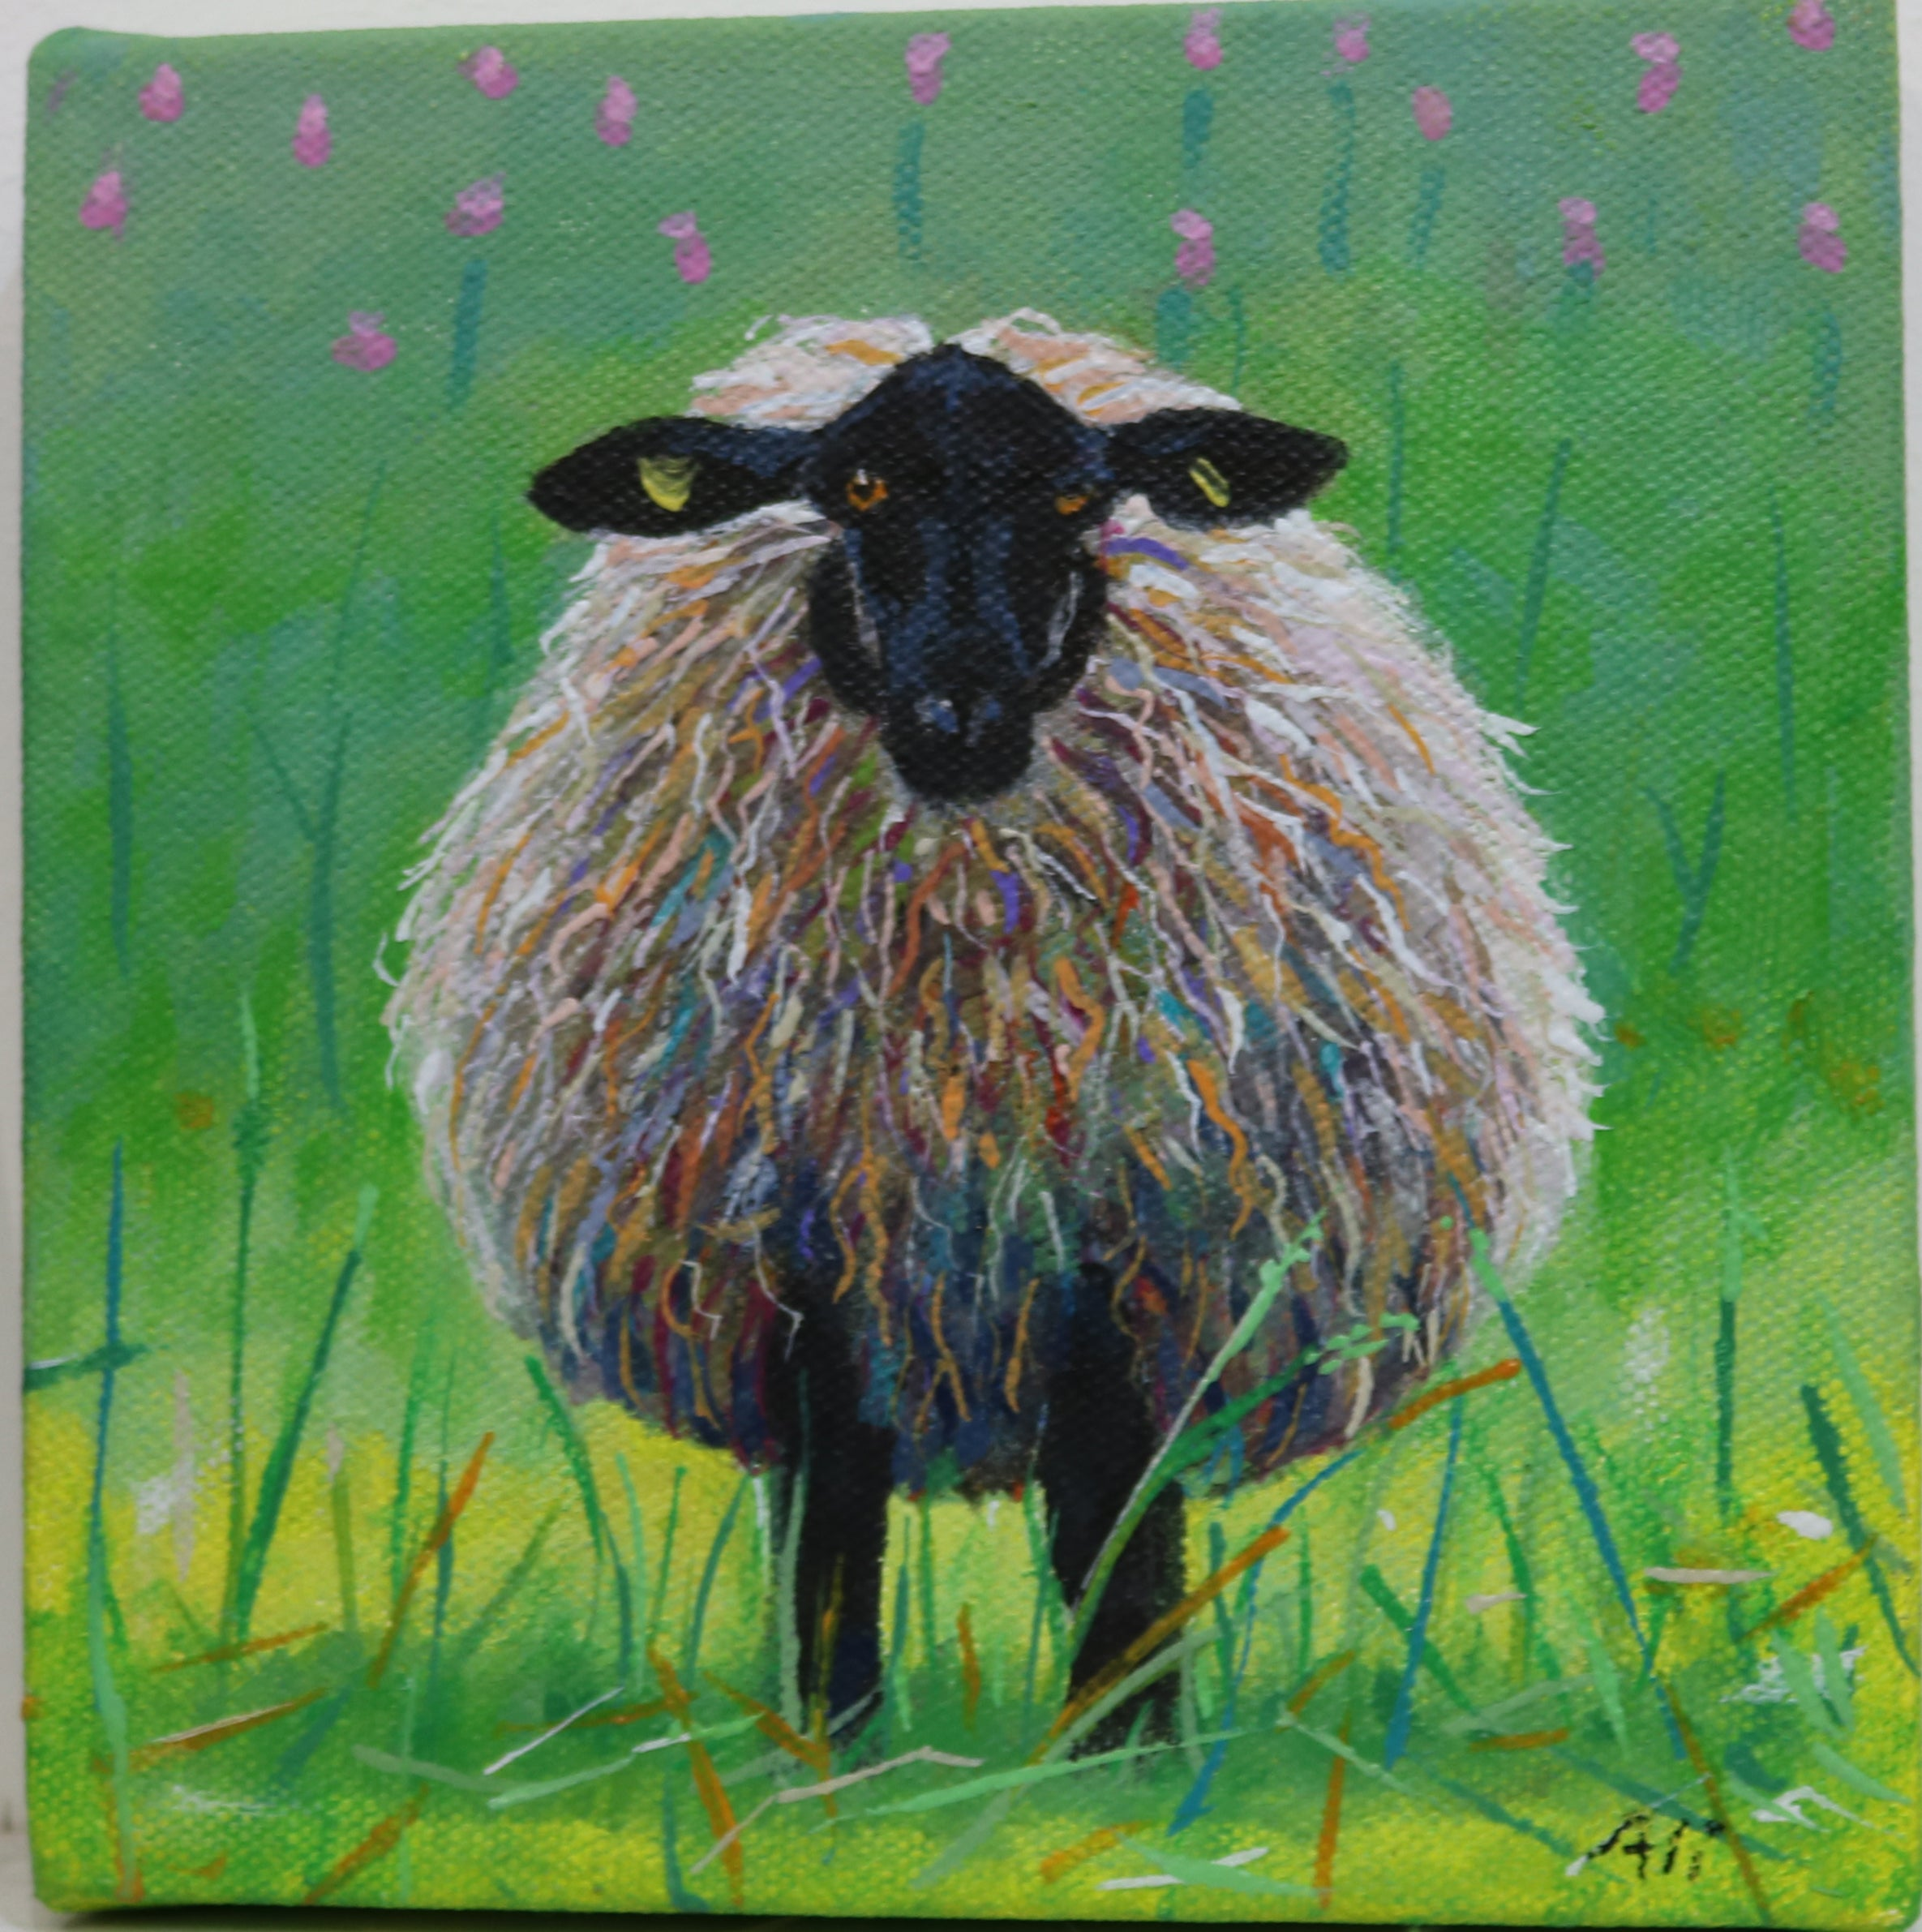 Sheep - Alison Jess